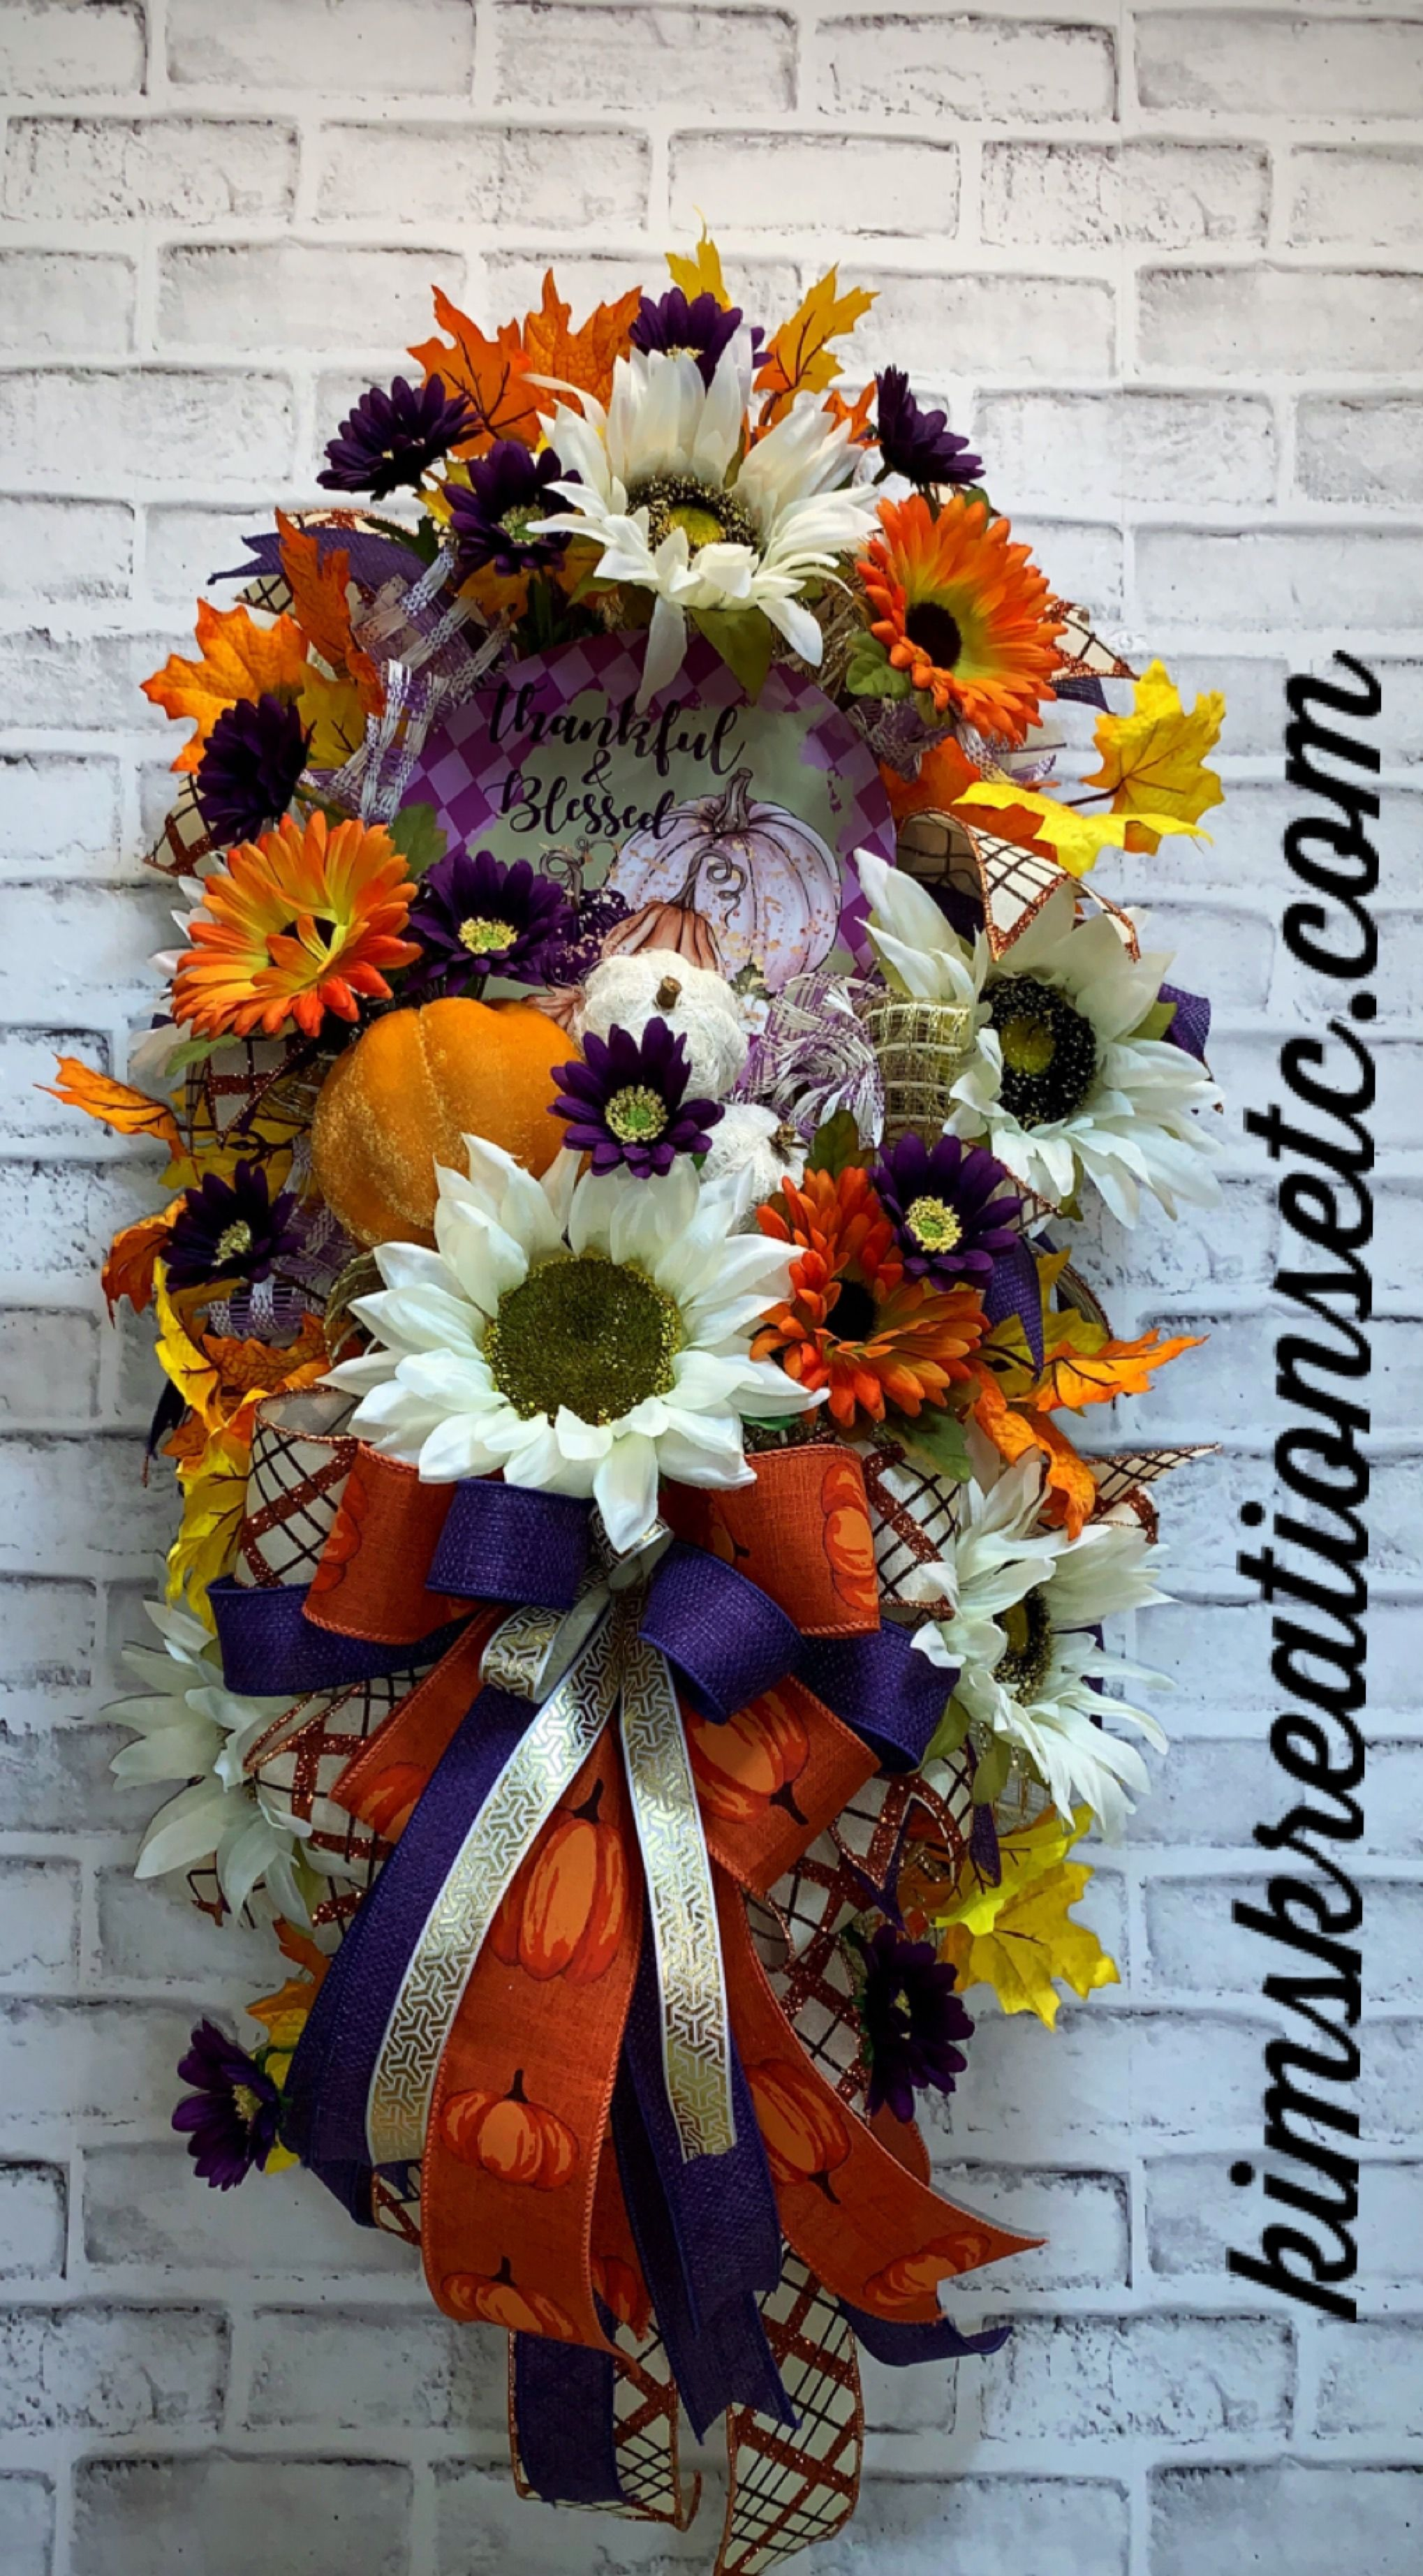 Fall Swag, FREE SHIPPING, Fall Door Swag, Purple for Fall, Fall Door Wreath, Front Door Swag, Fall Decor, Thankful and Blessed, Sunflowers, Fall Pumpkins, Home Decor, Wreaths for Sale